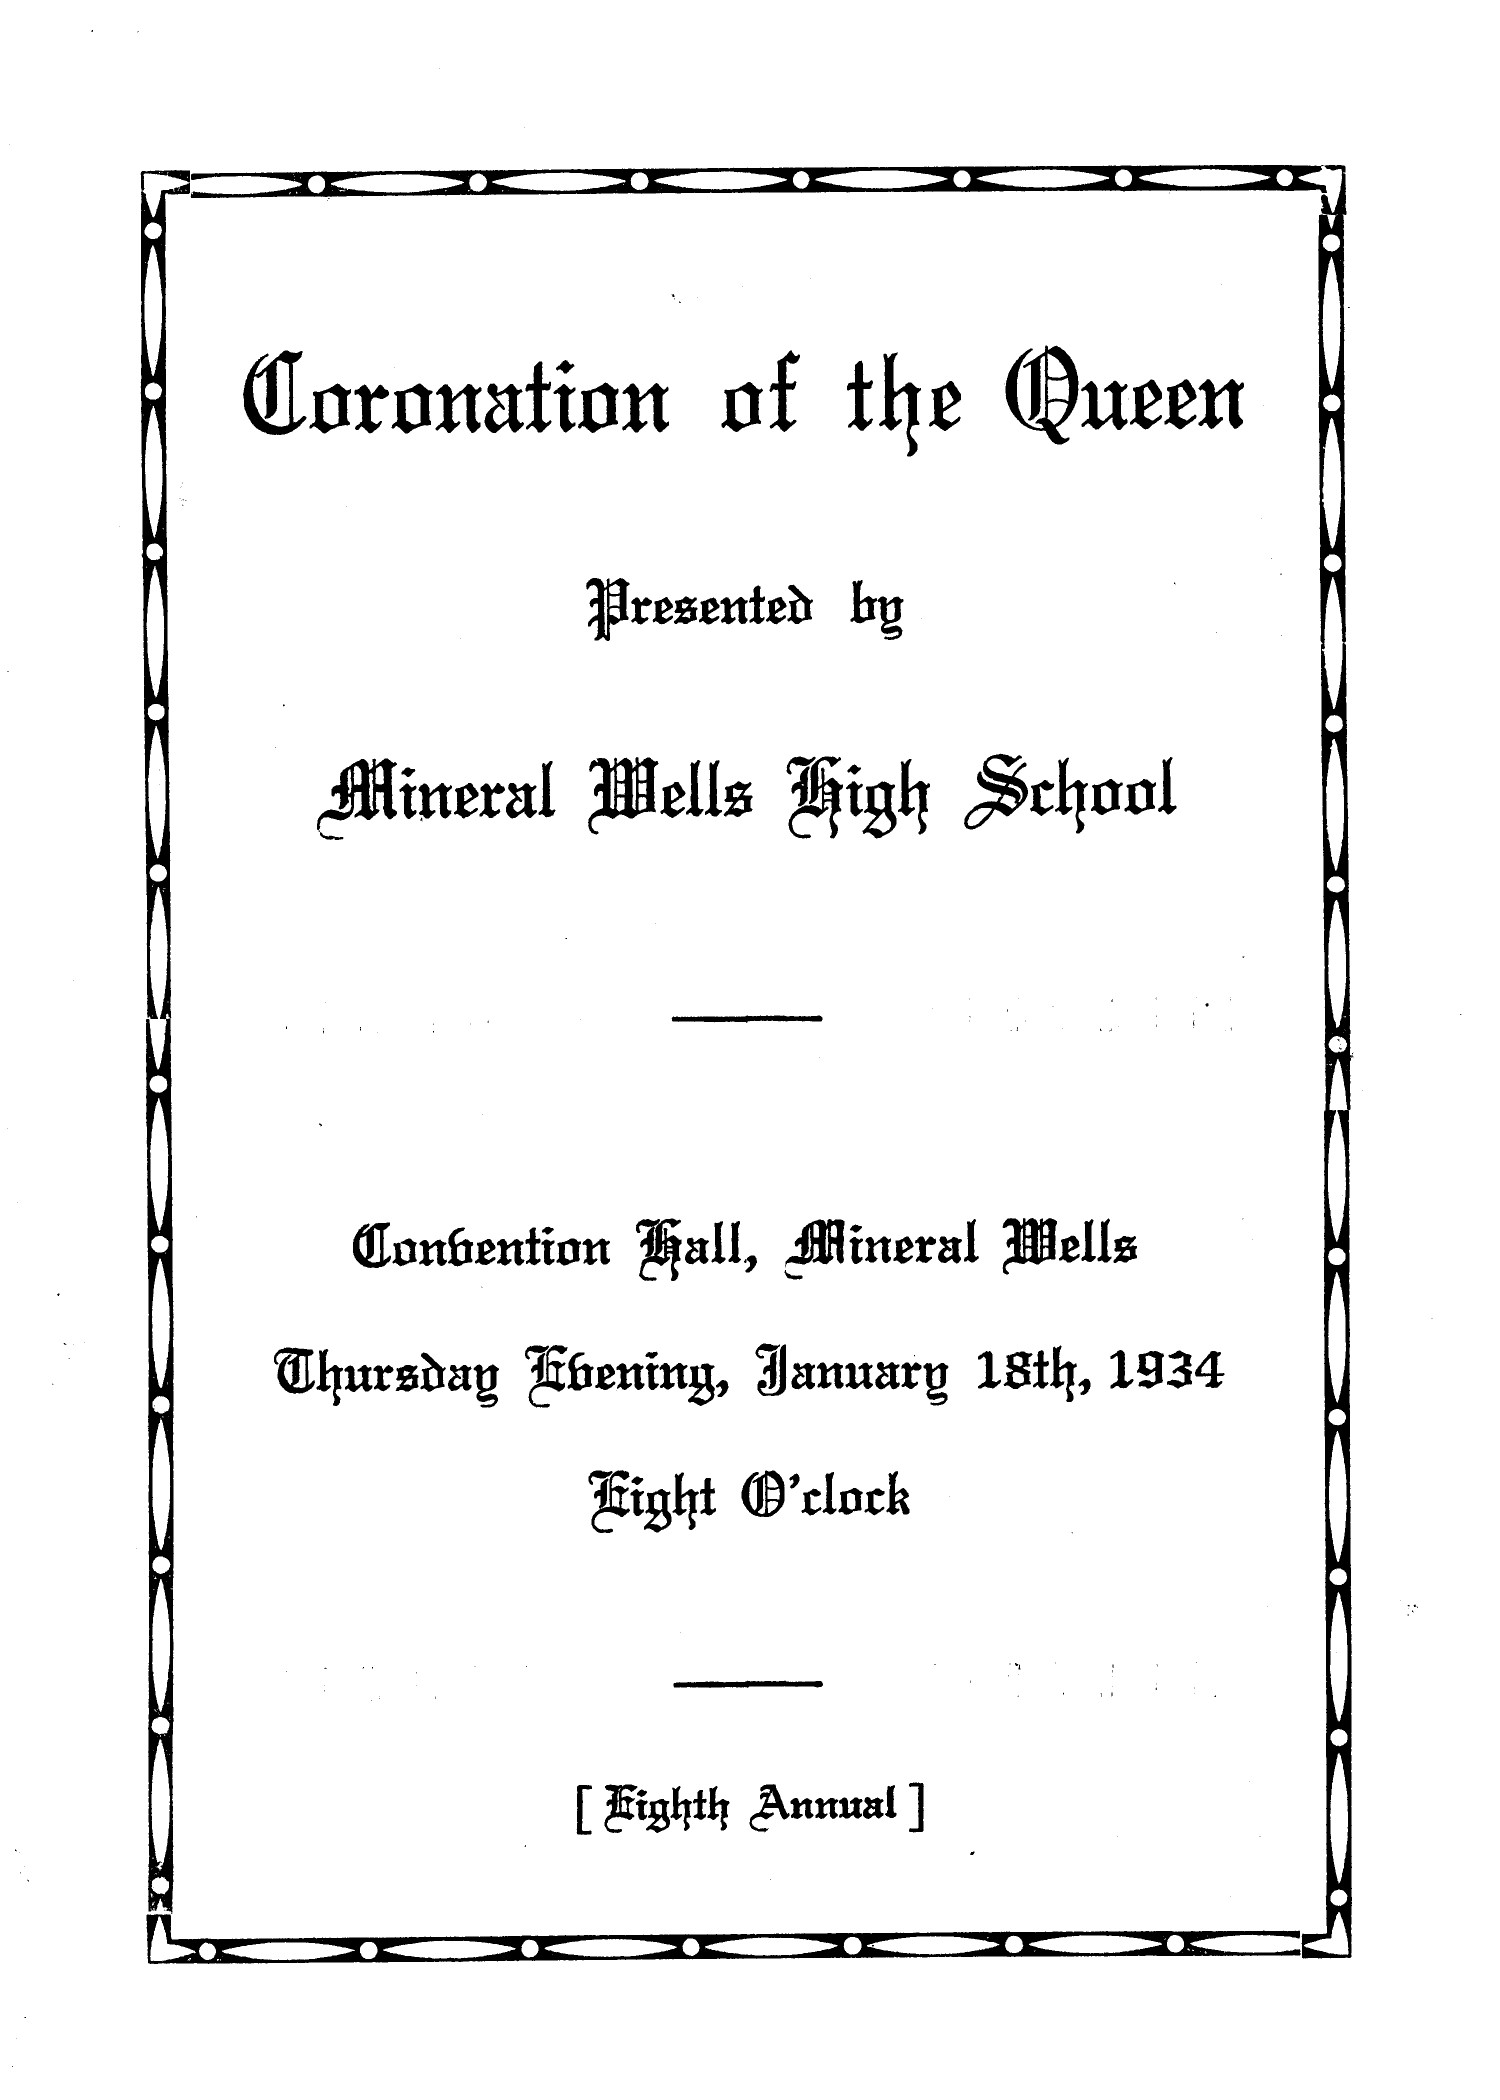 A Program for the Coronation of the Queen at MWHS, 1934                                                                                                      [Sequence #]: 1 of 4